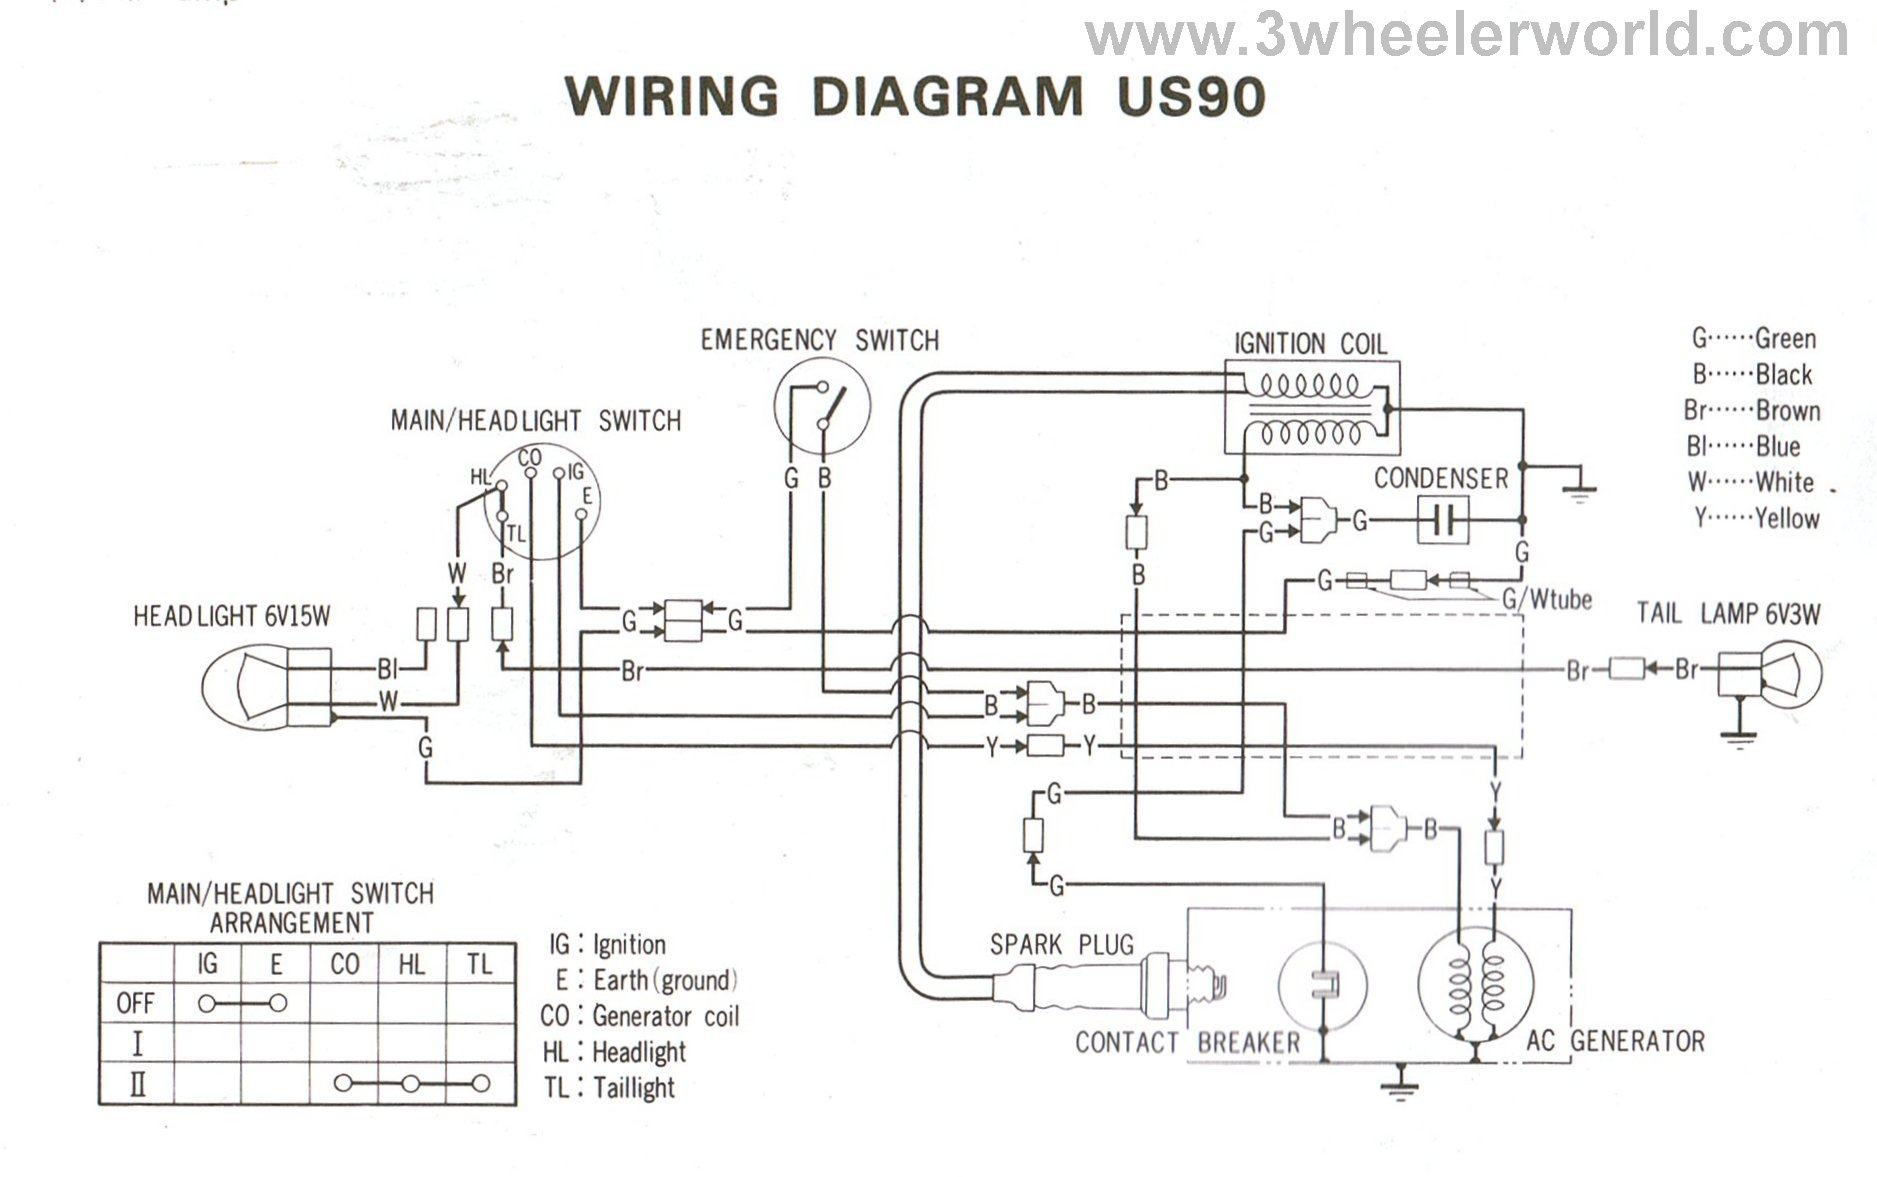 3 wheeler world tech help honda wiring diagrams Saturn Wiring Harness